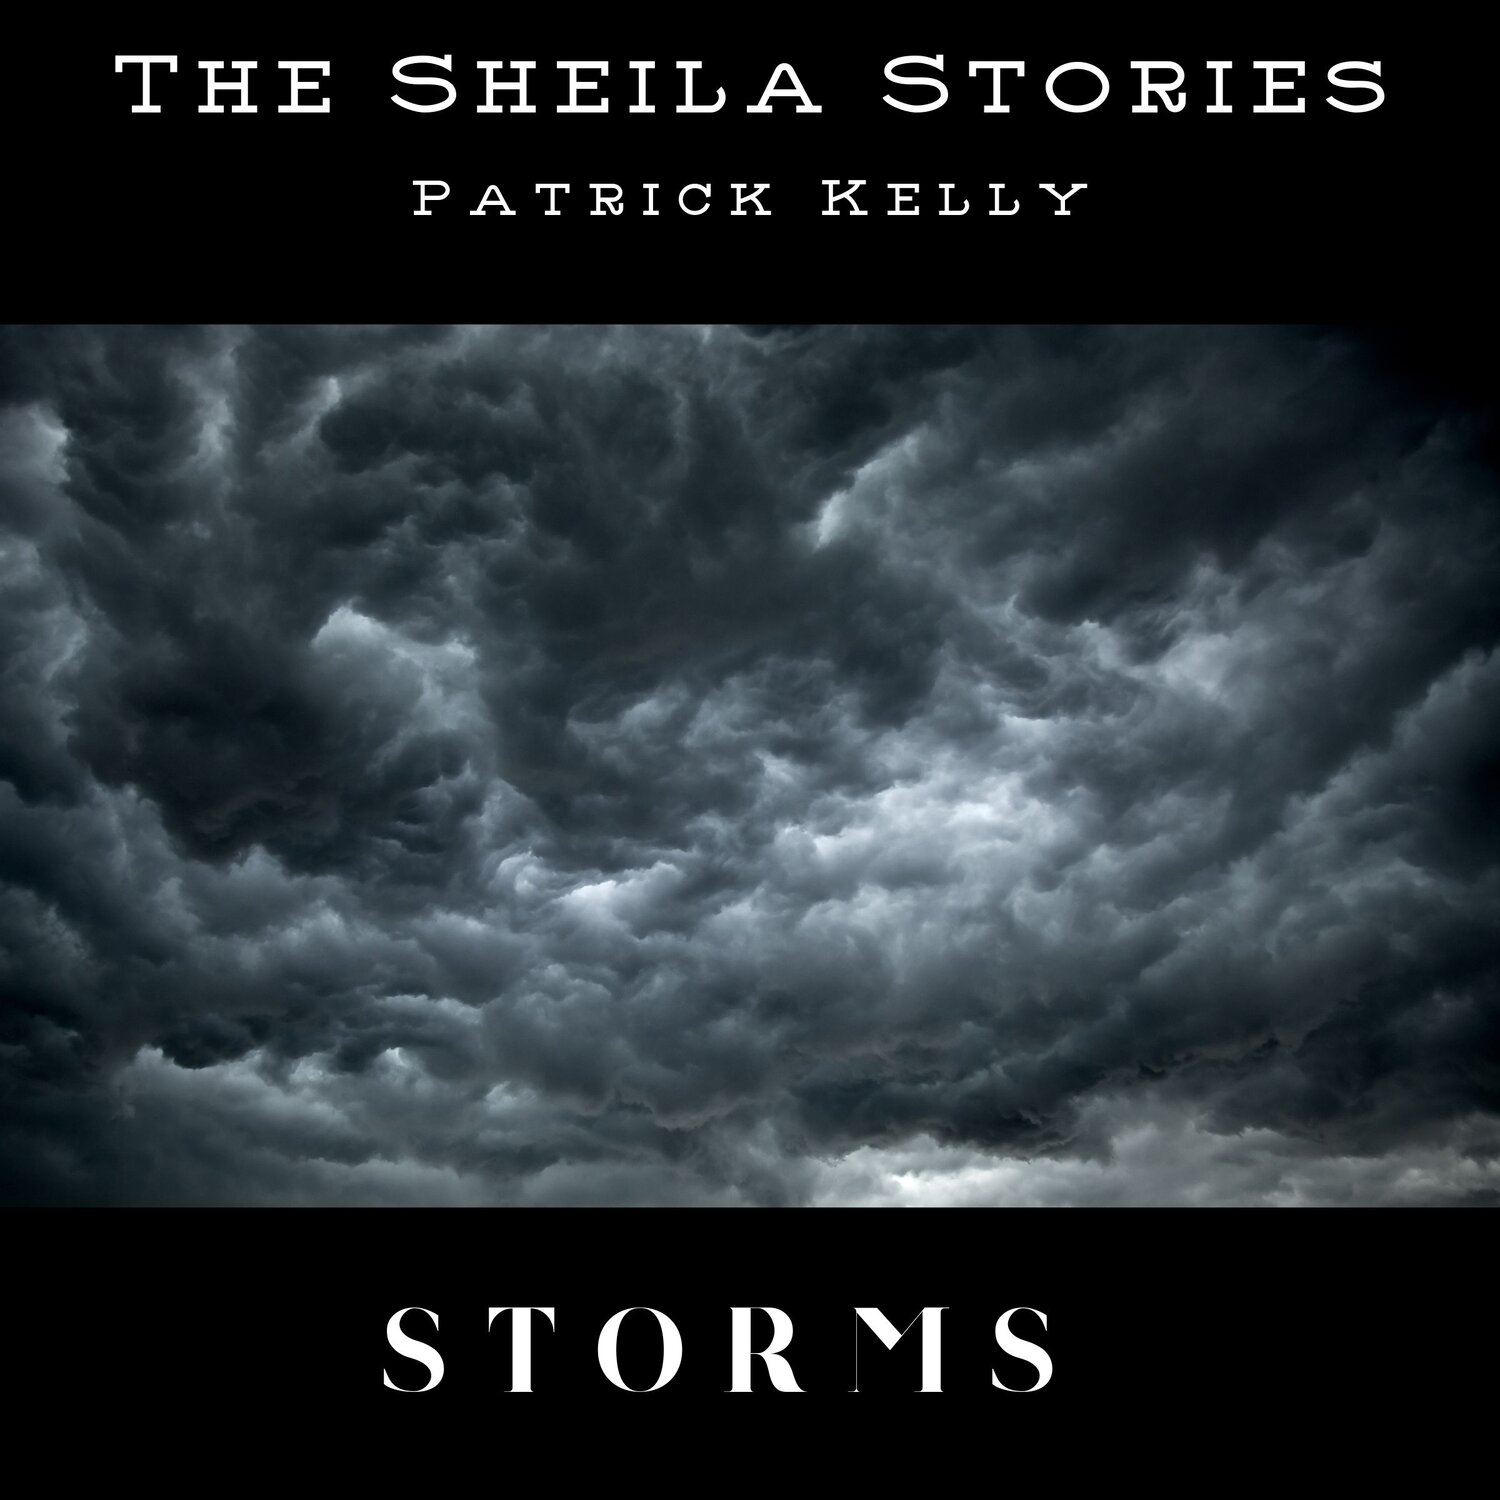 SS EP11 Cover Storms Small.jpg